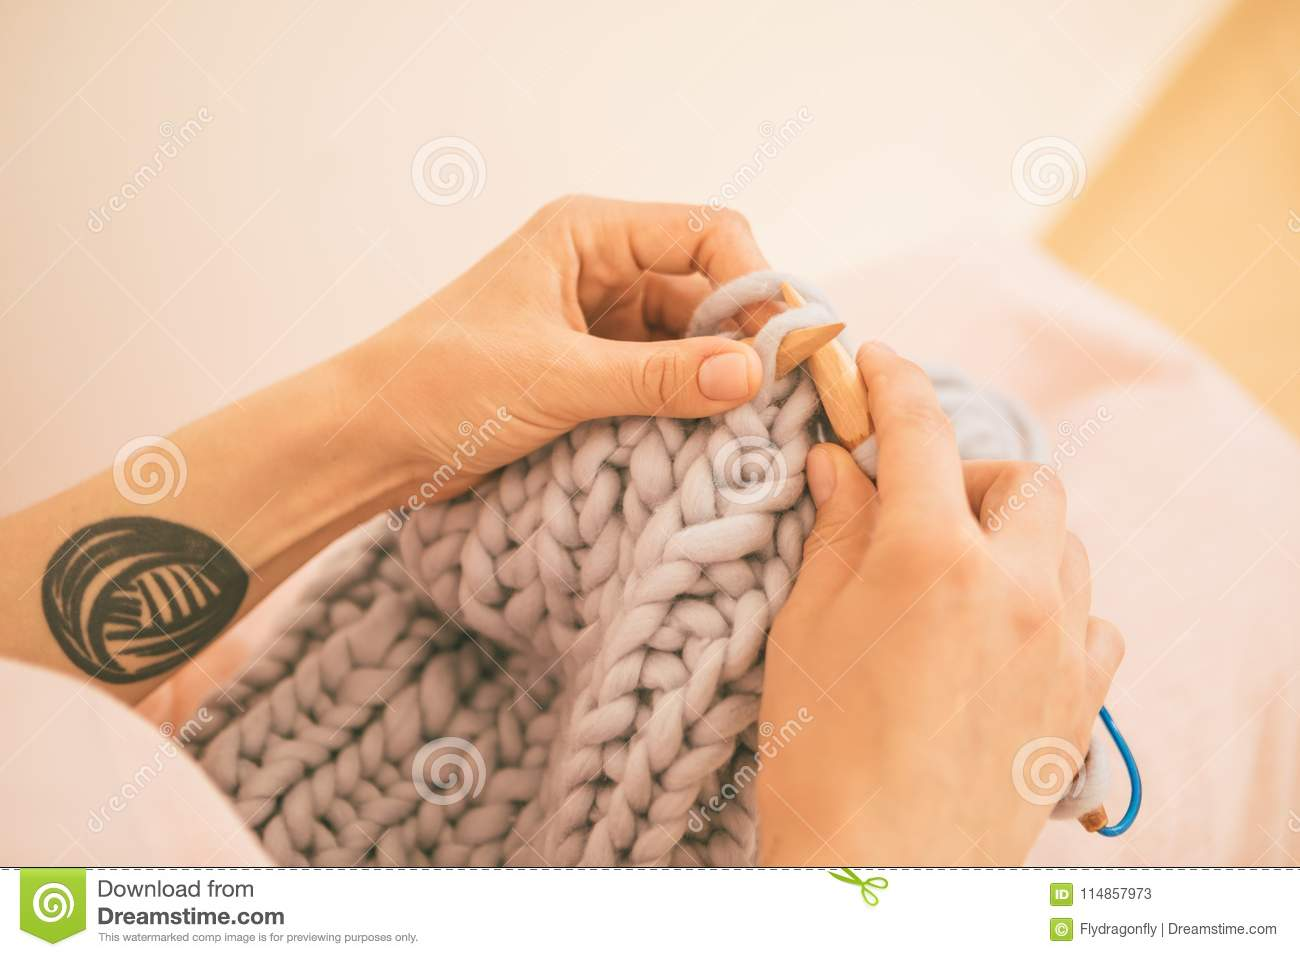 Woman hands knitting needles. hobby crafts things. Top view. Horizontal composition. Pink warm colors. New mainstream